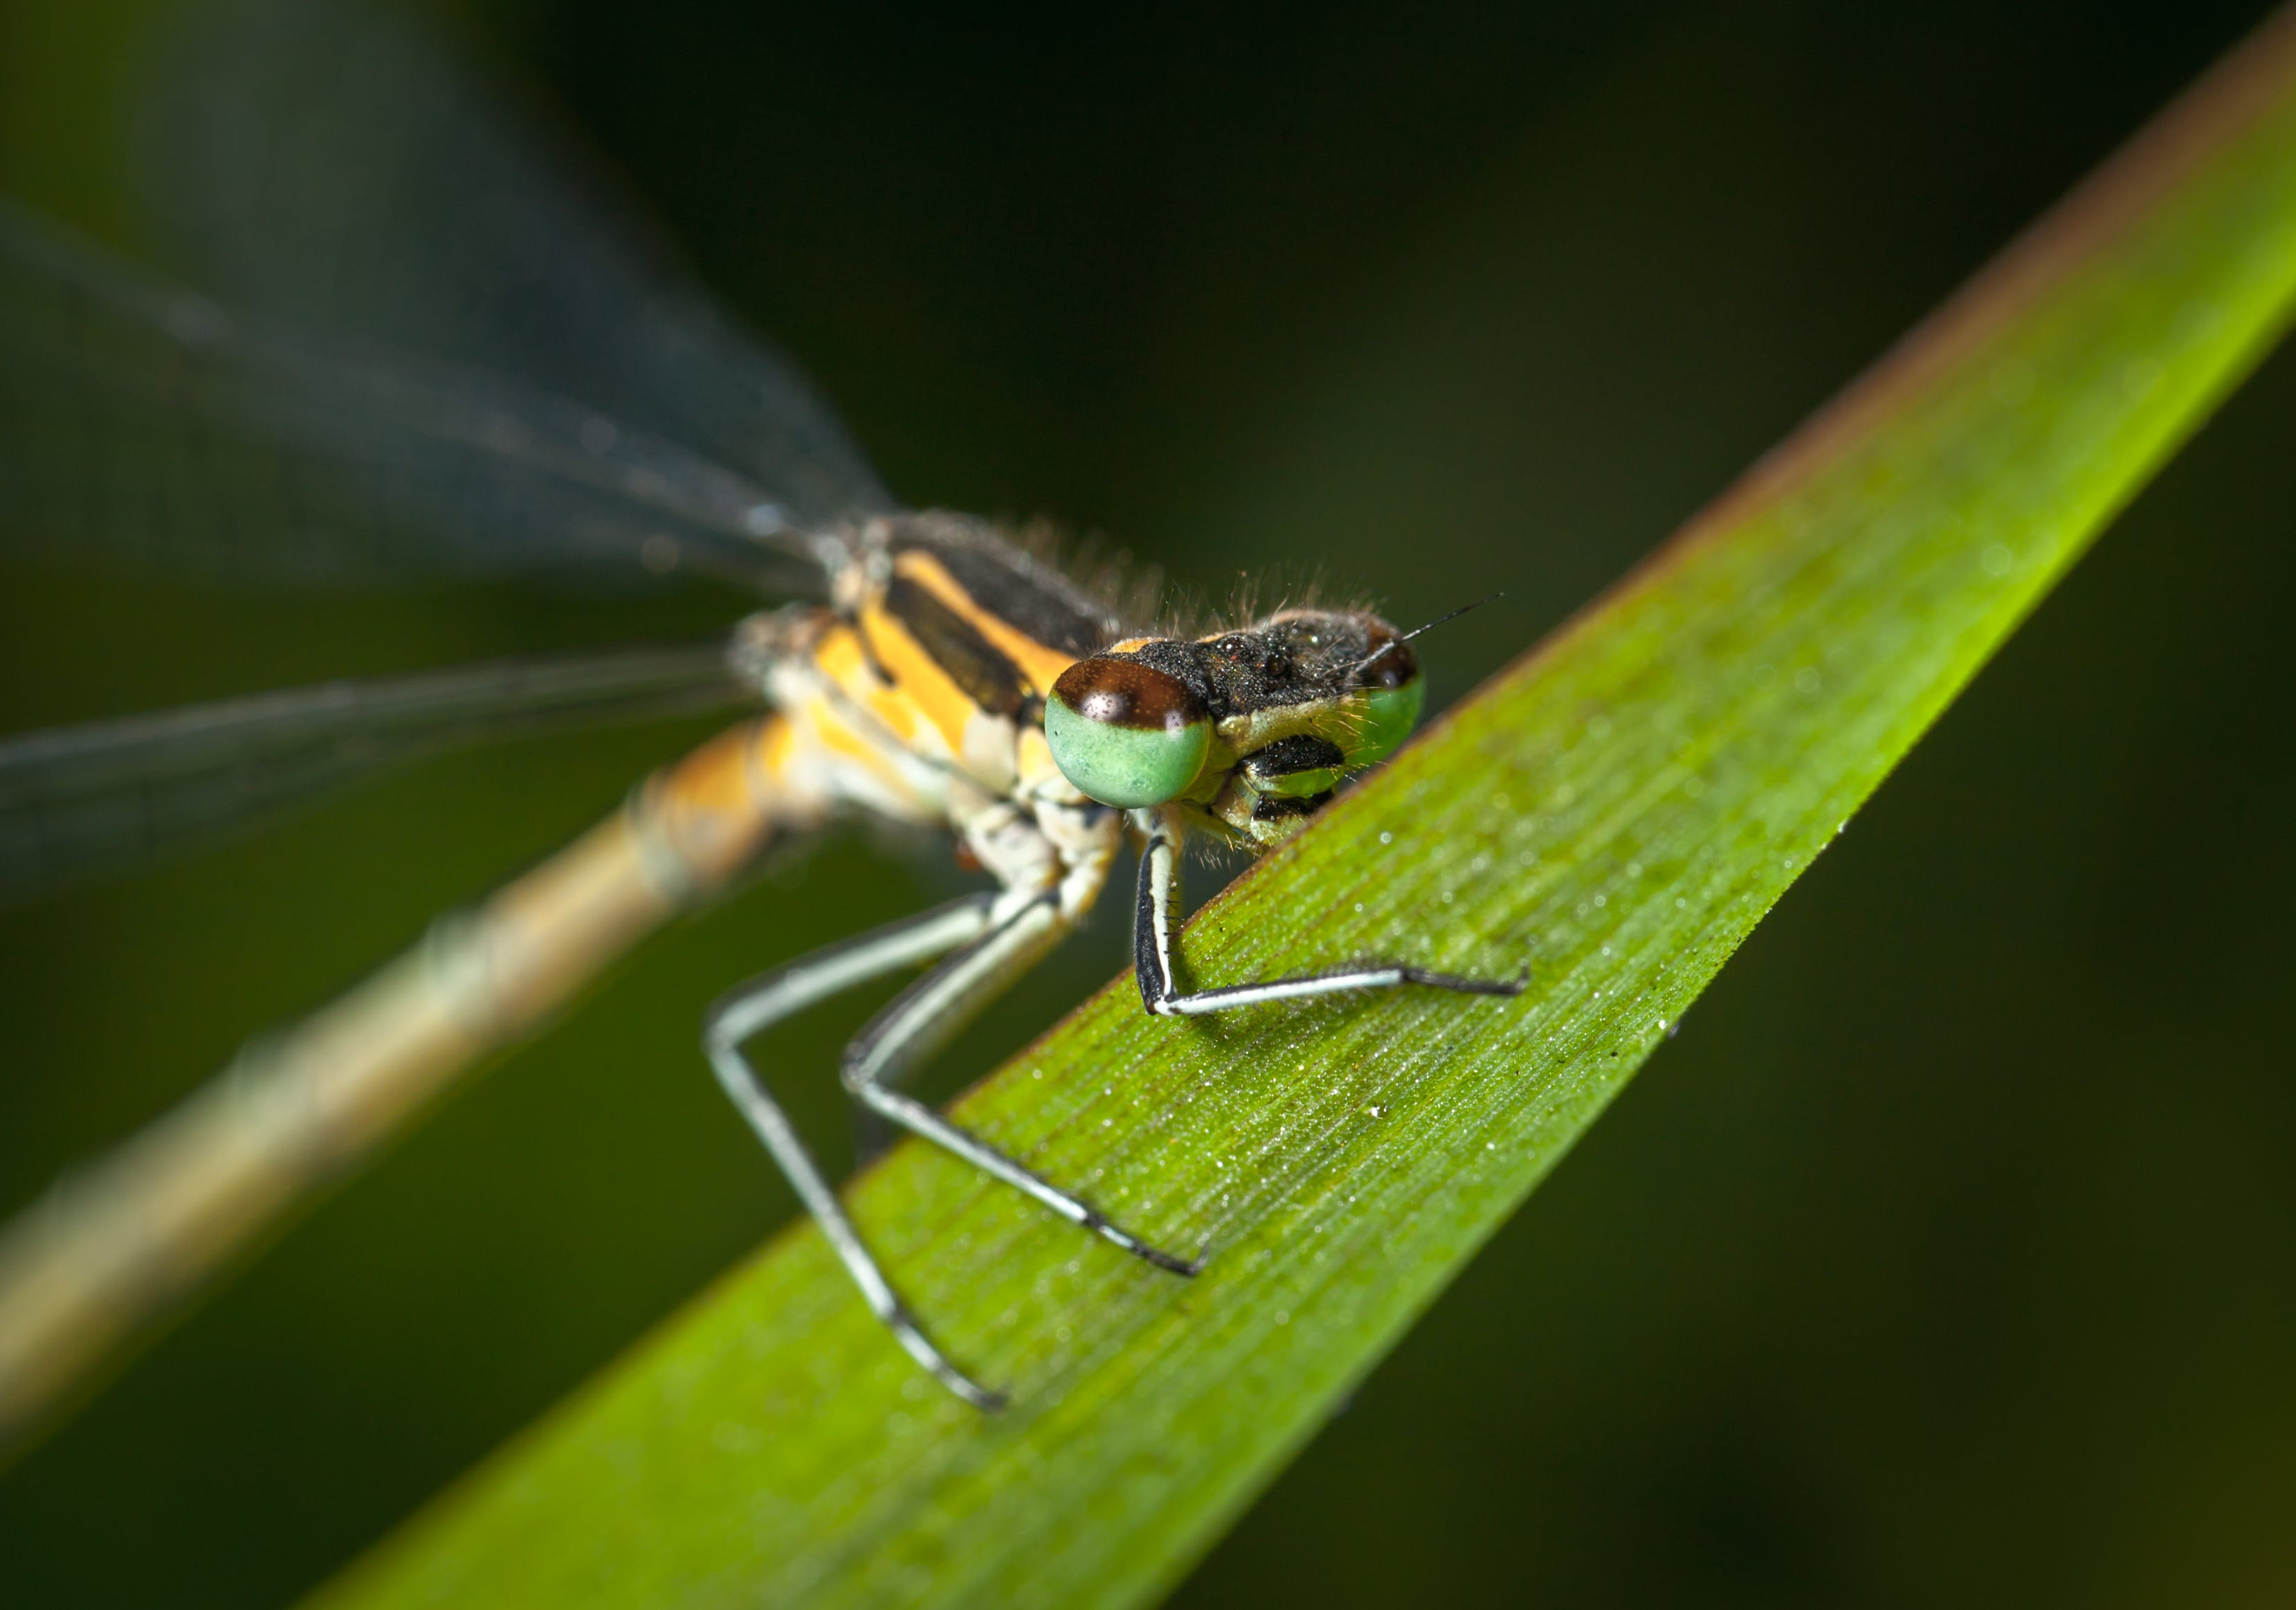 Selective Focus Photography of Green and Yellow Dragonfly Perched on Green Leaf